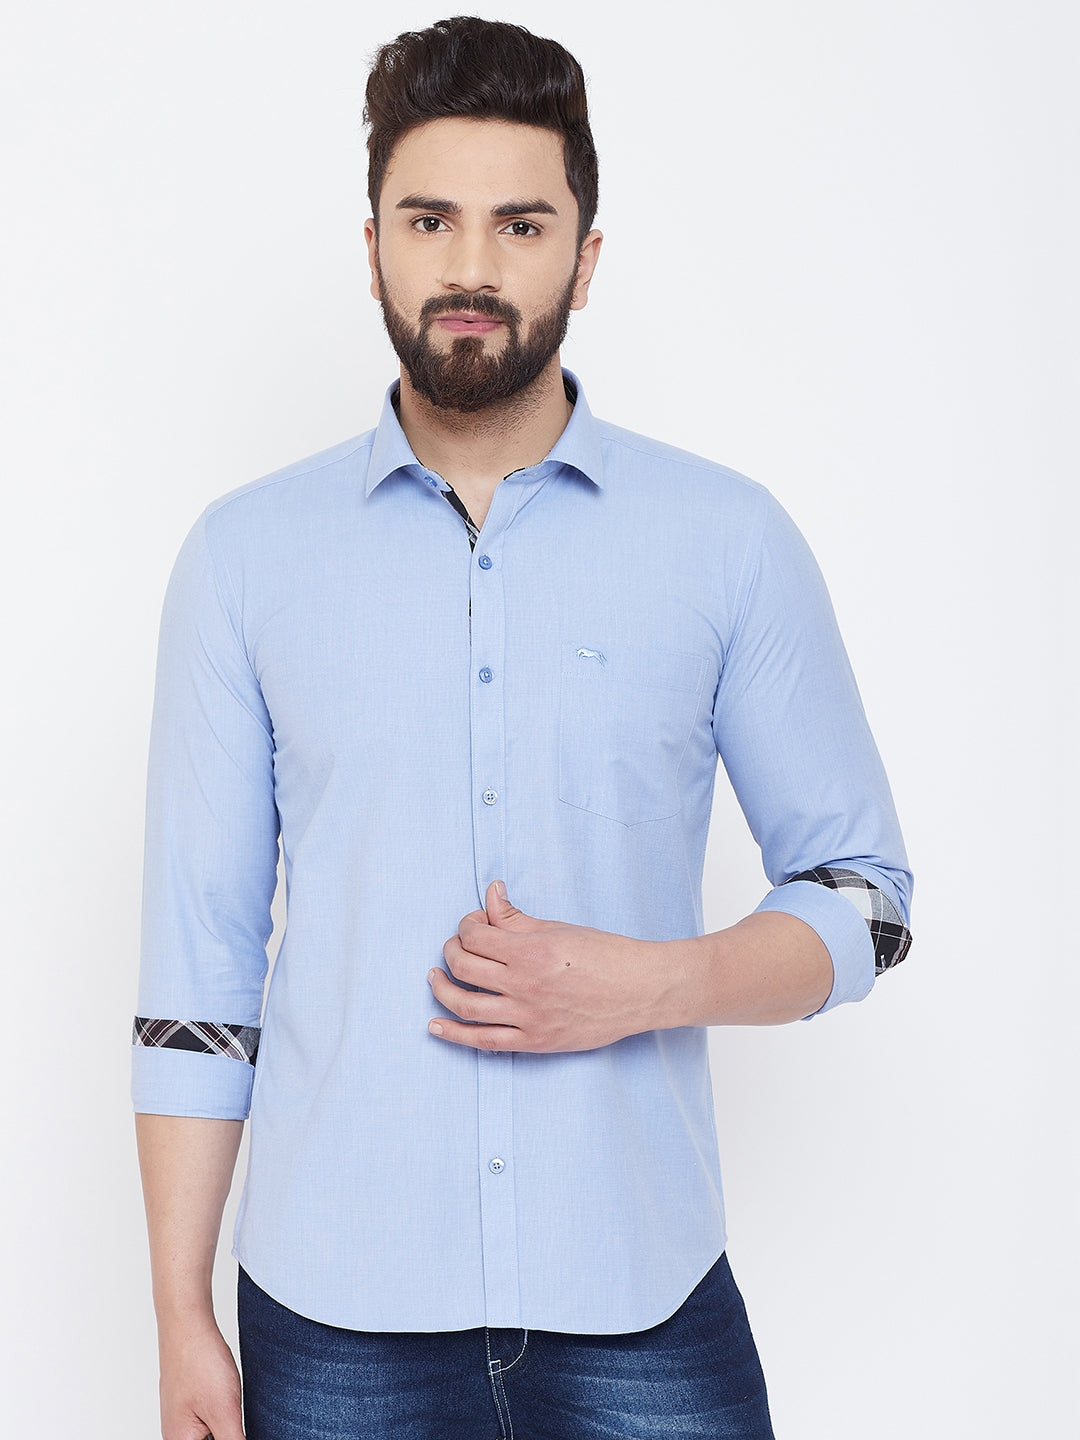 JUMP USA Men Powder Blue Solid Cotton Casual Shirts